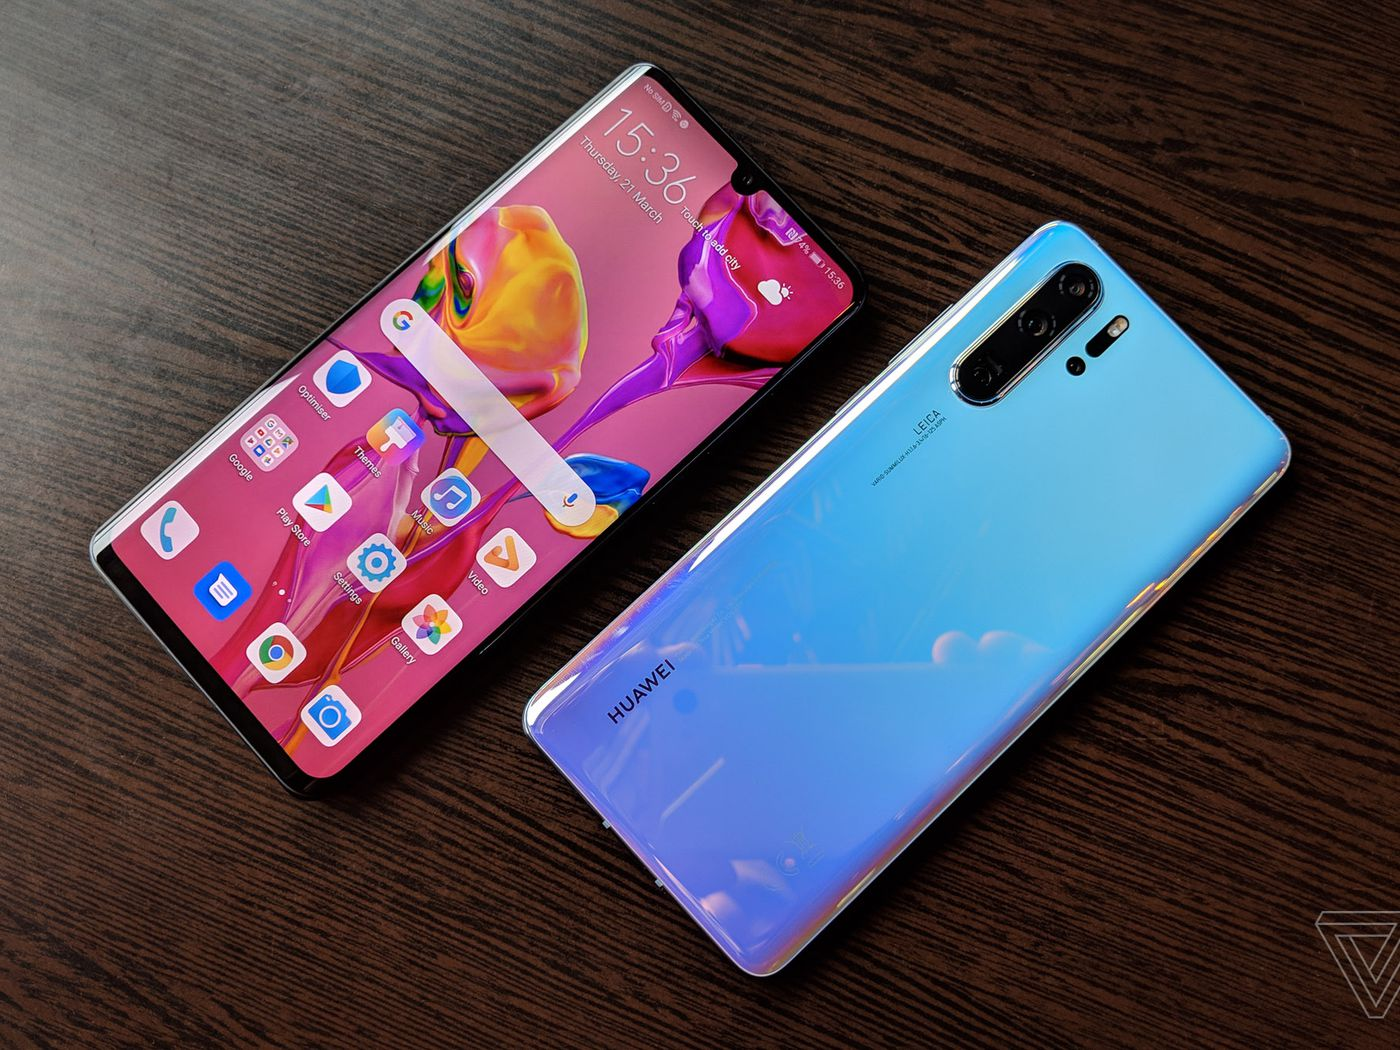 Can Huawei make a phone without US parts? - The Verge